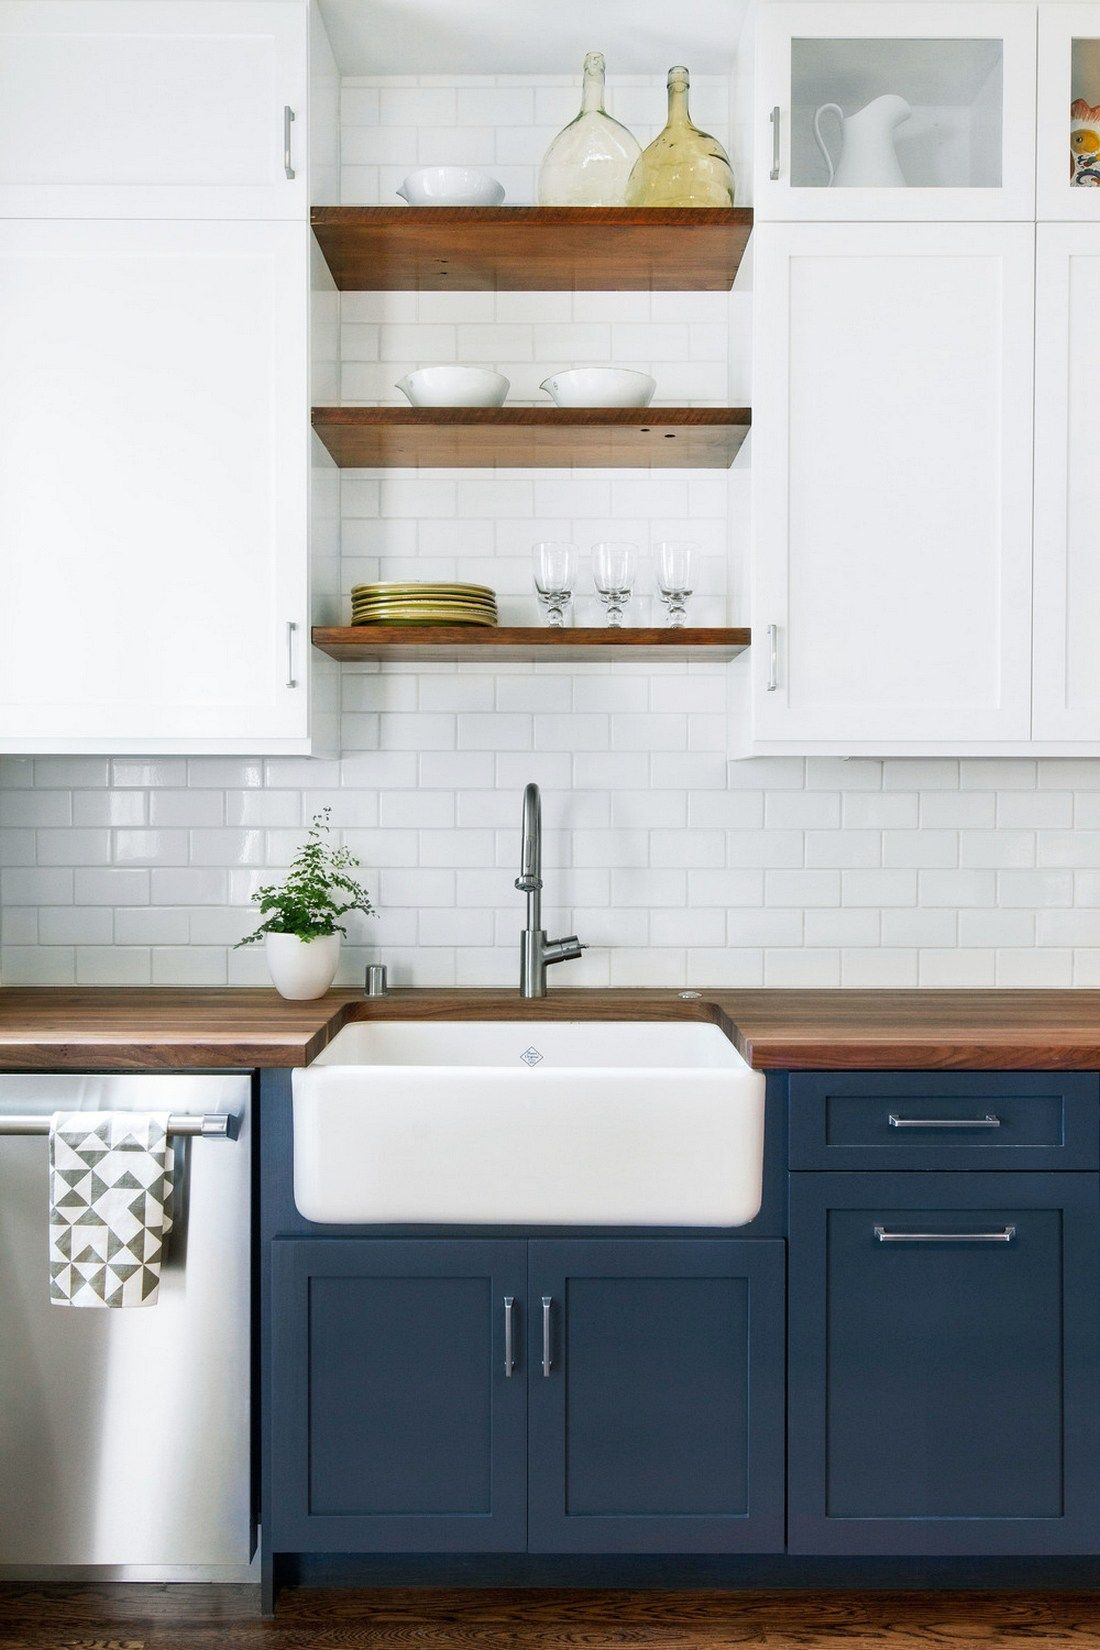 123 cozy and chic farmhouse kitchen cabinets